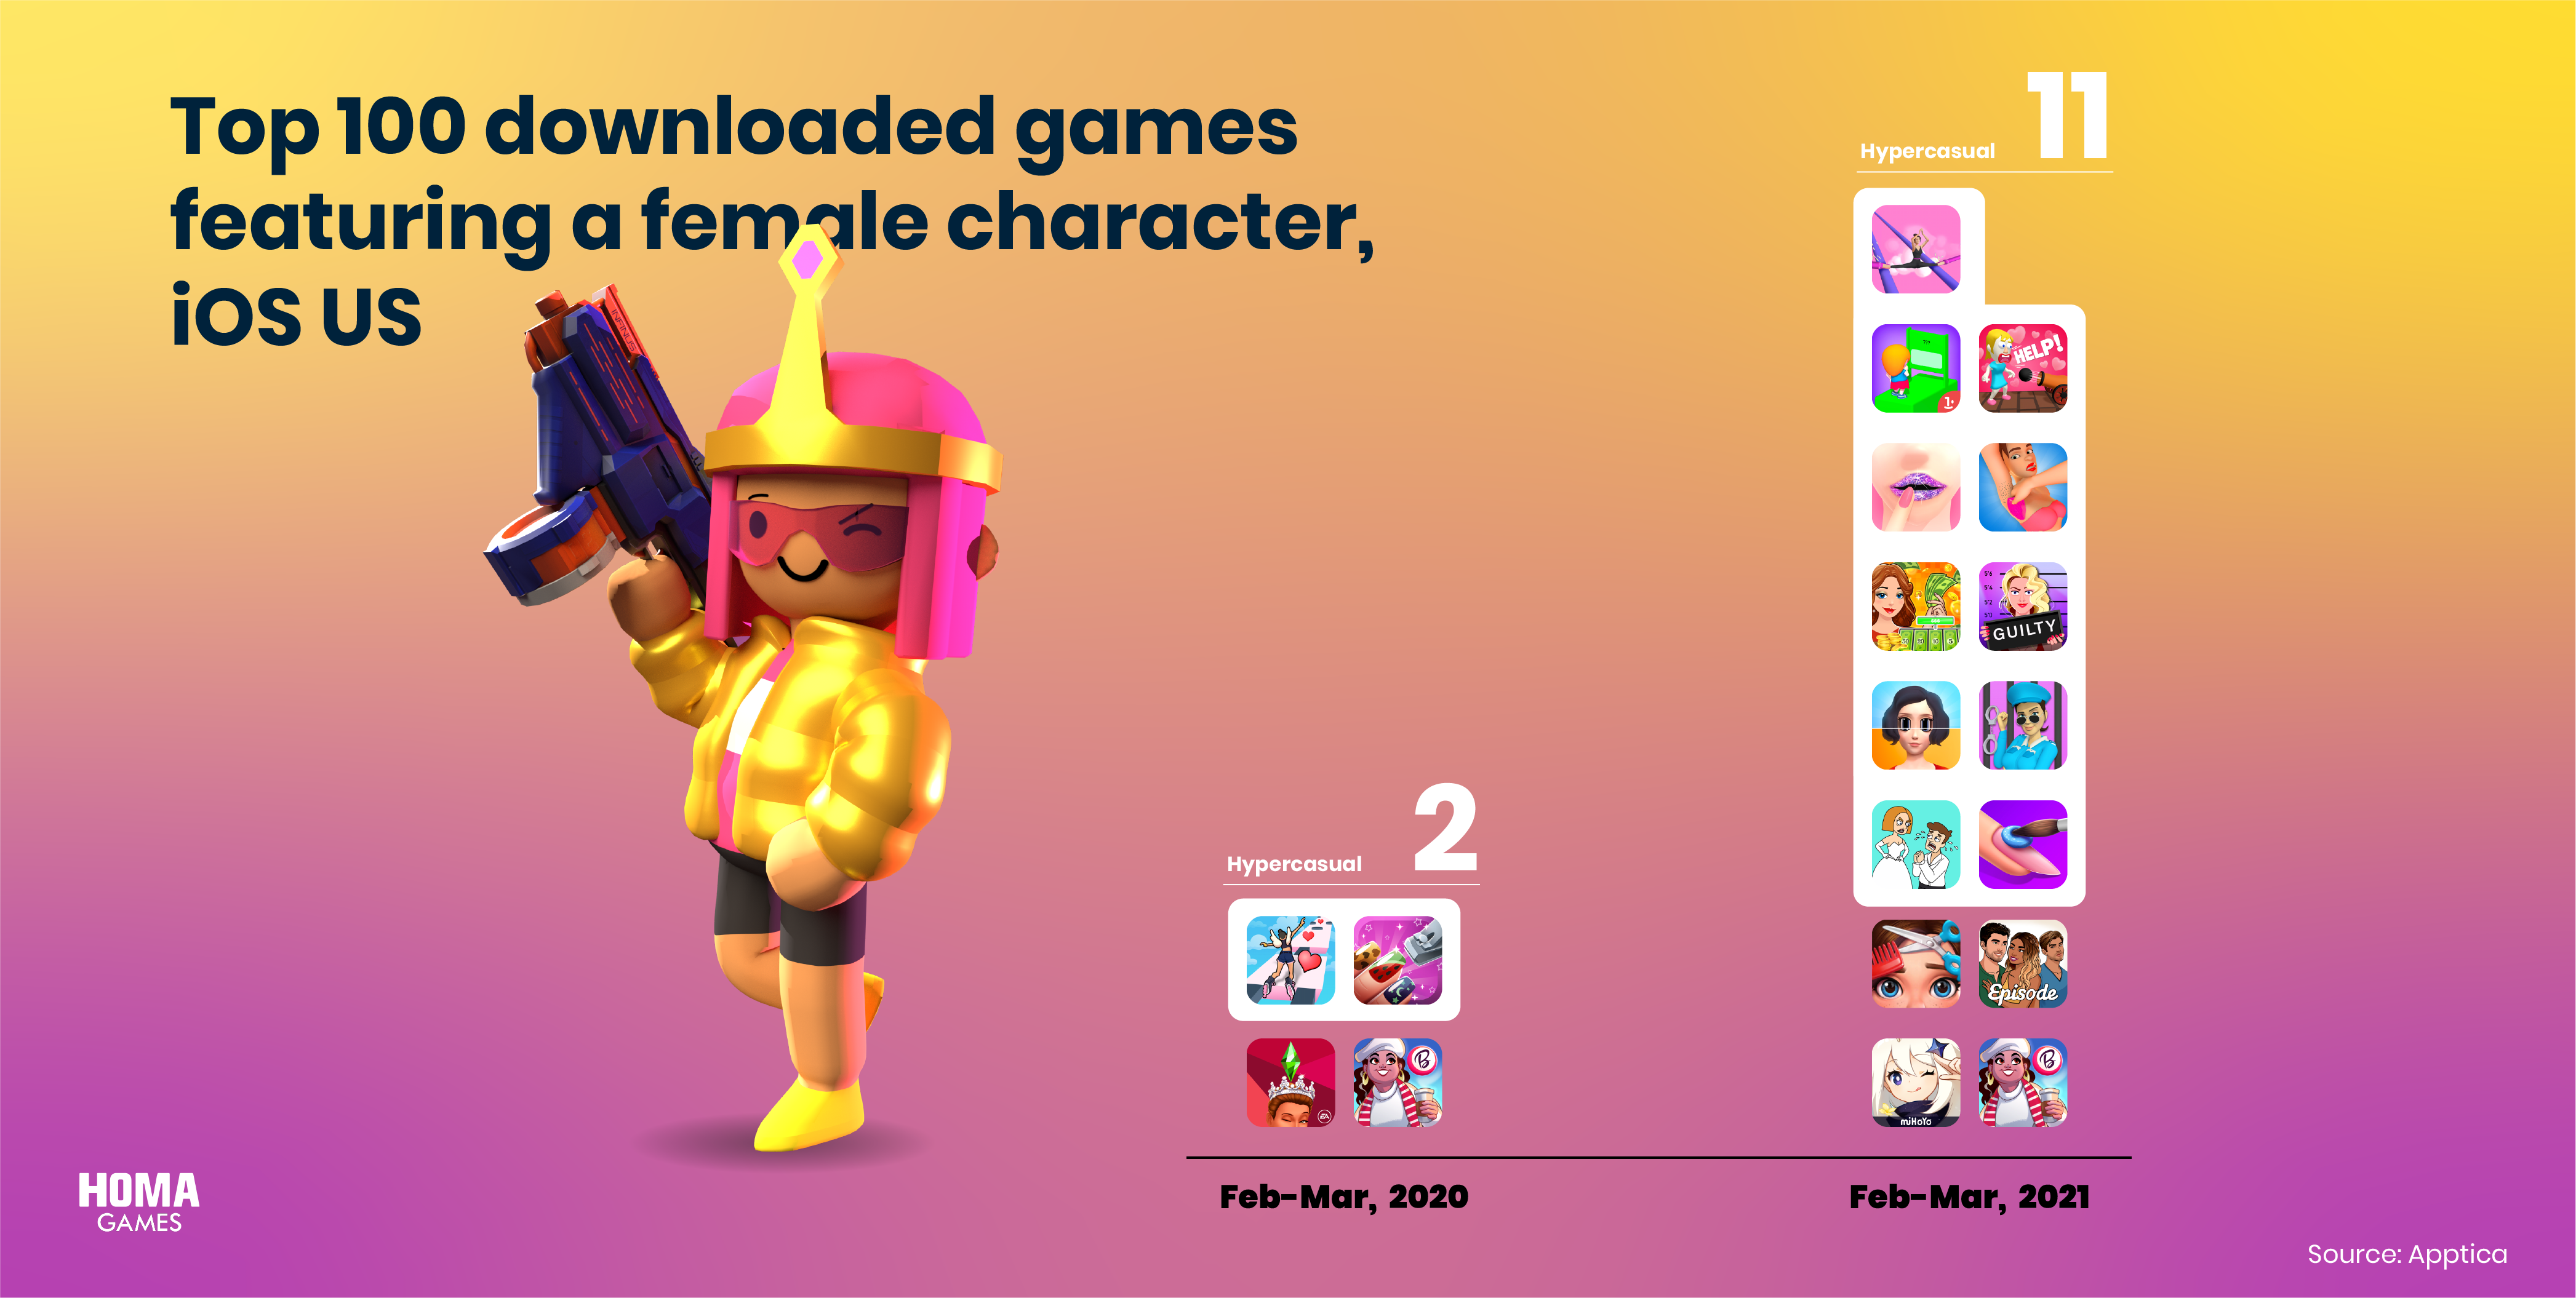 Top 100 downloaded games featuring a female character